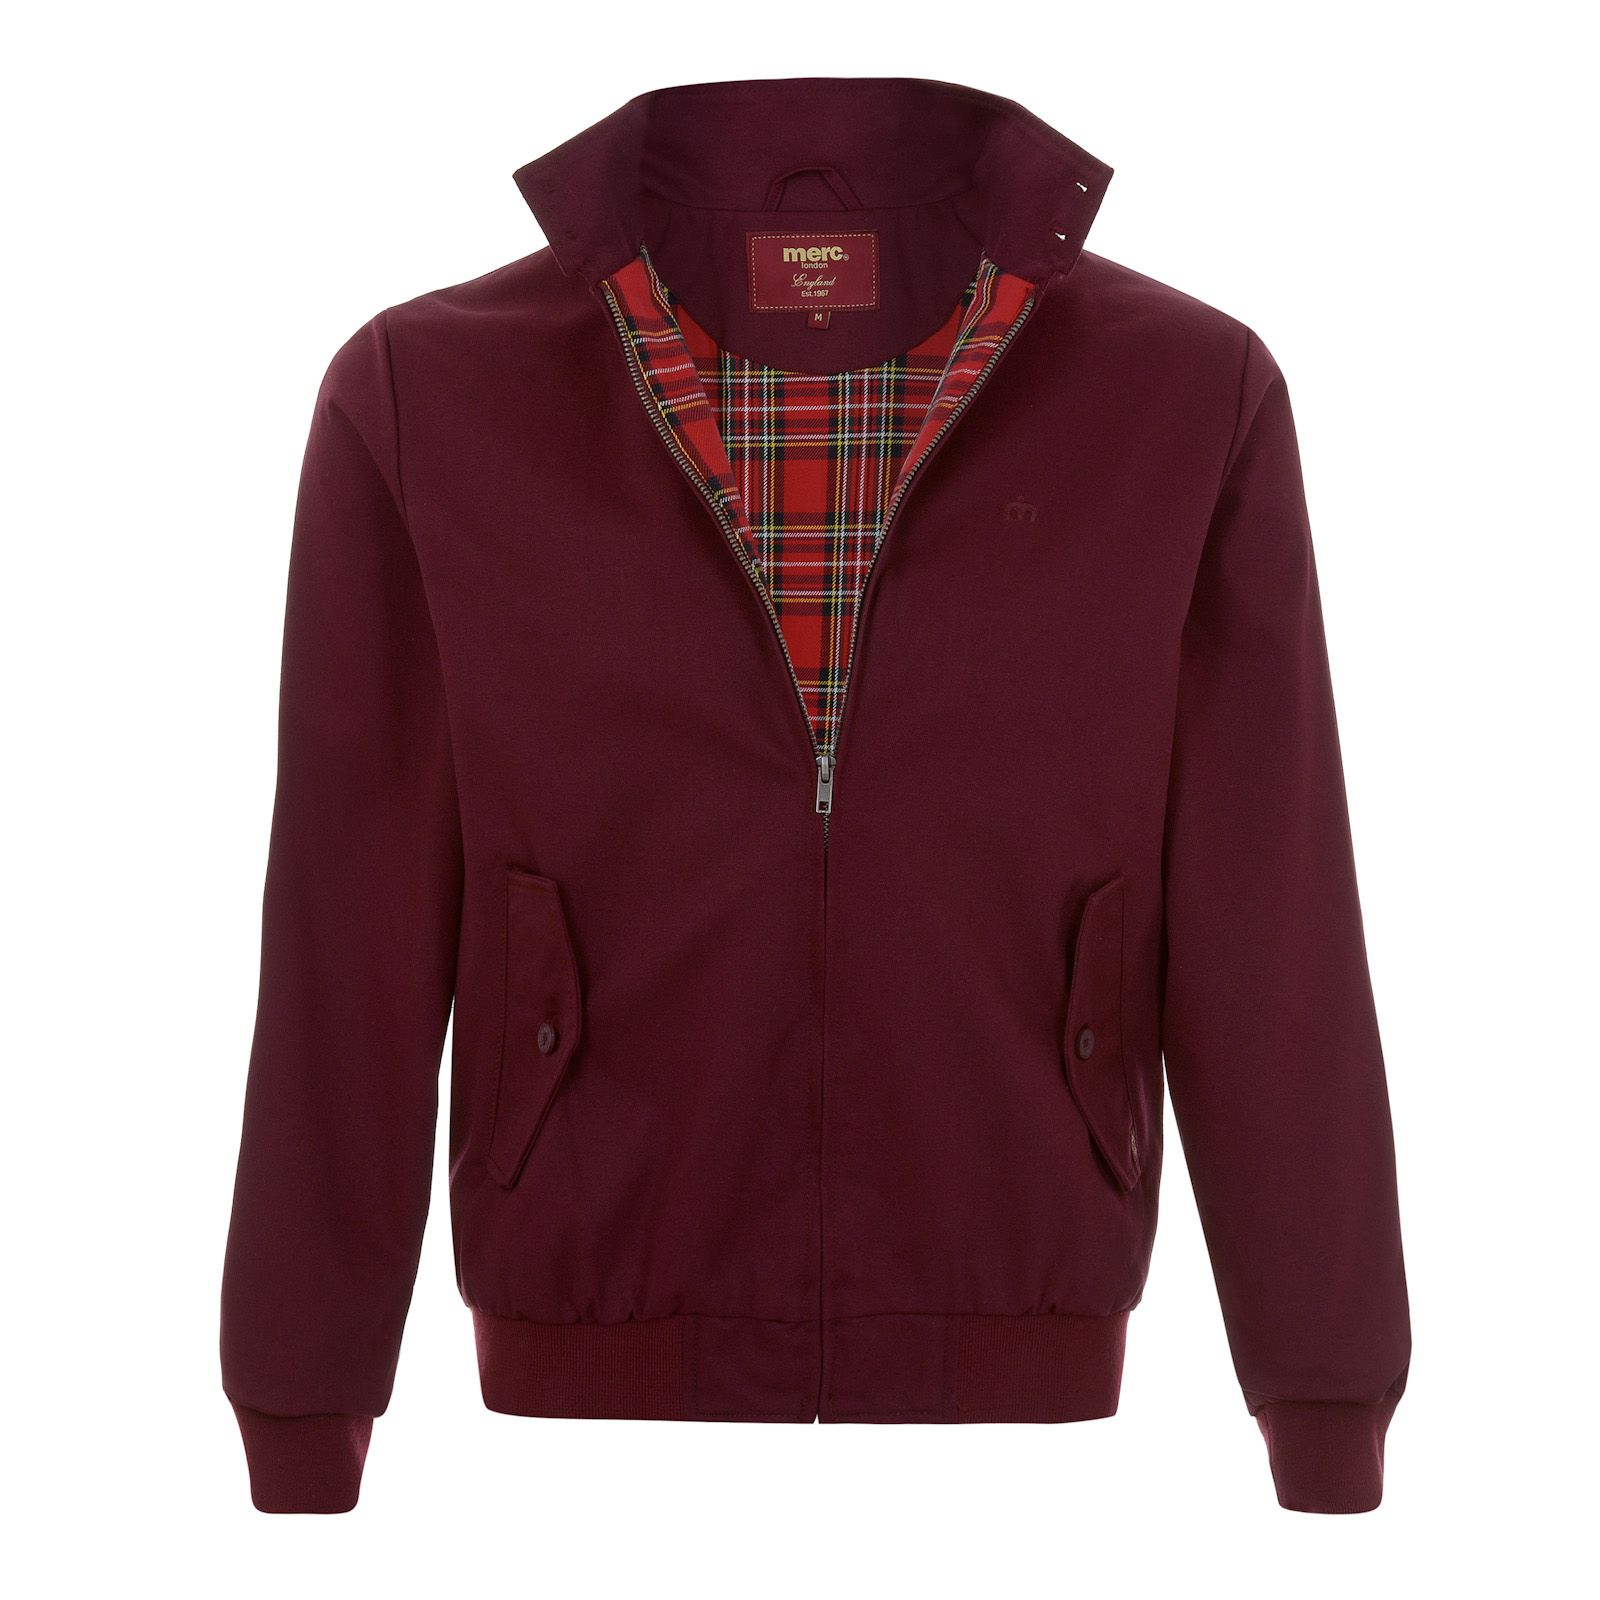 Merc Harrington Jacket in Wine